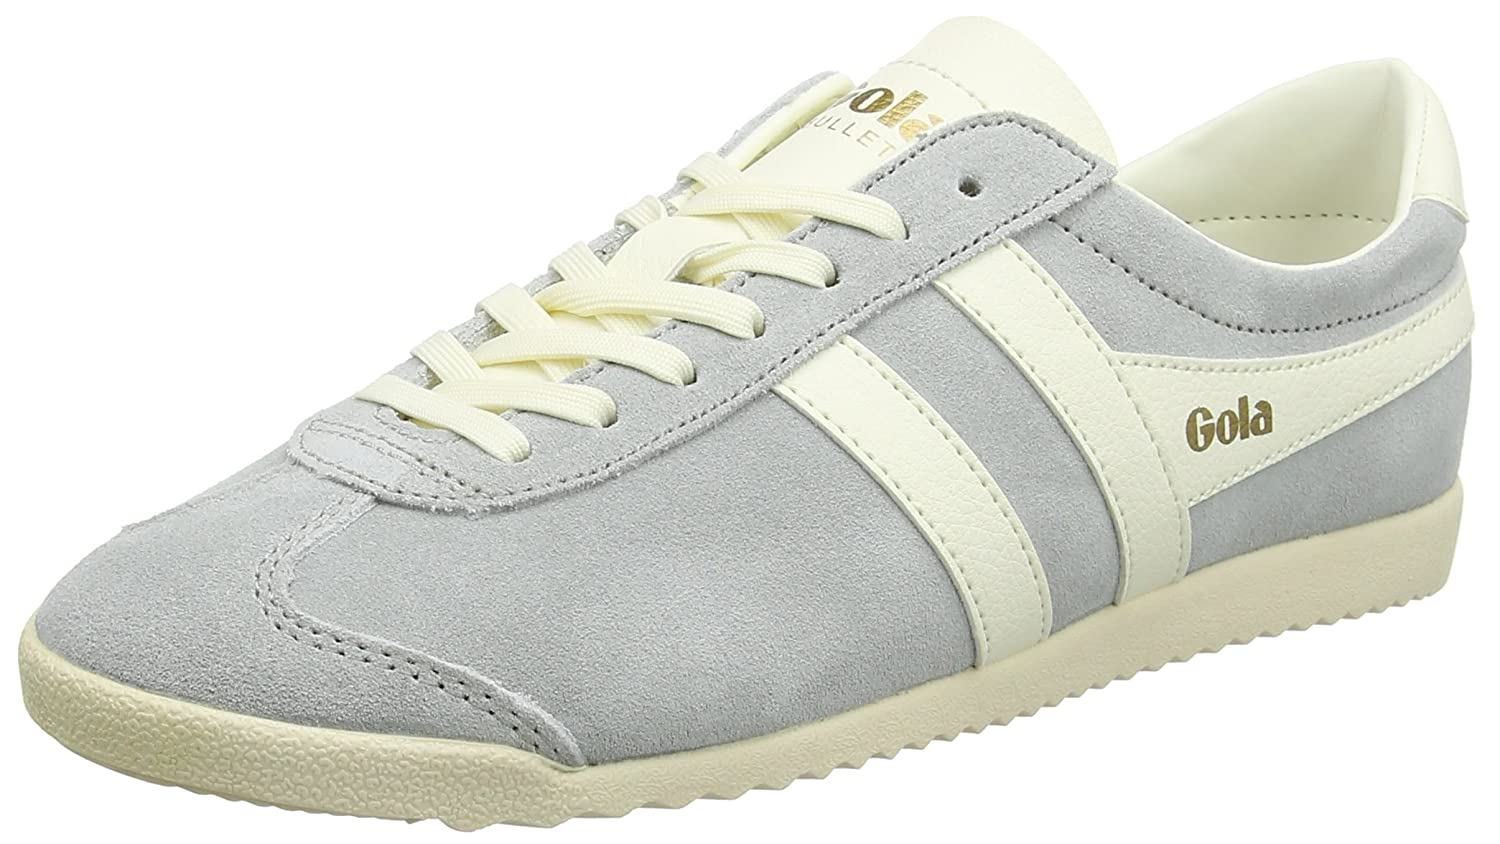 Gola Bullet Suede, Botines para Mujer 39 EU|Gris (Pale Grey/Off White)